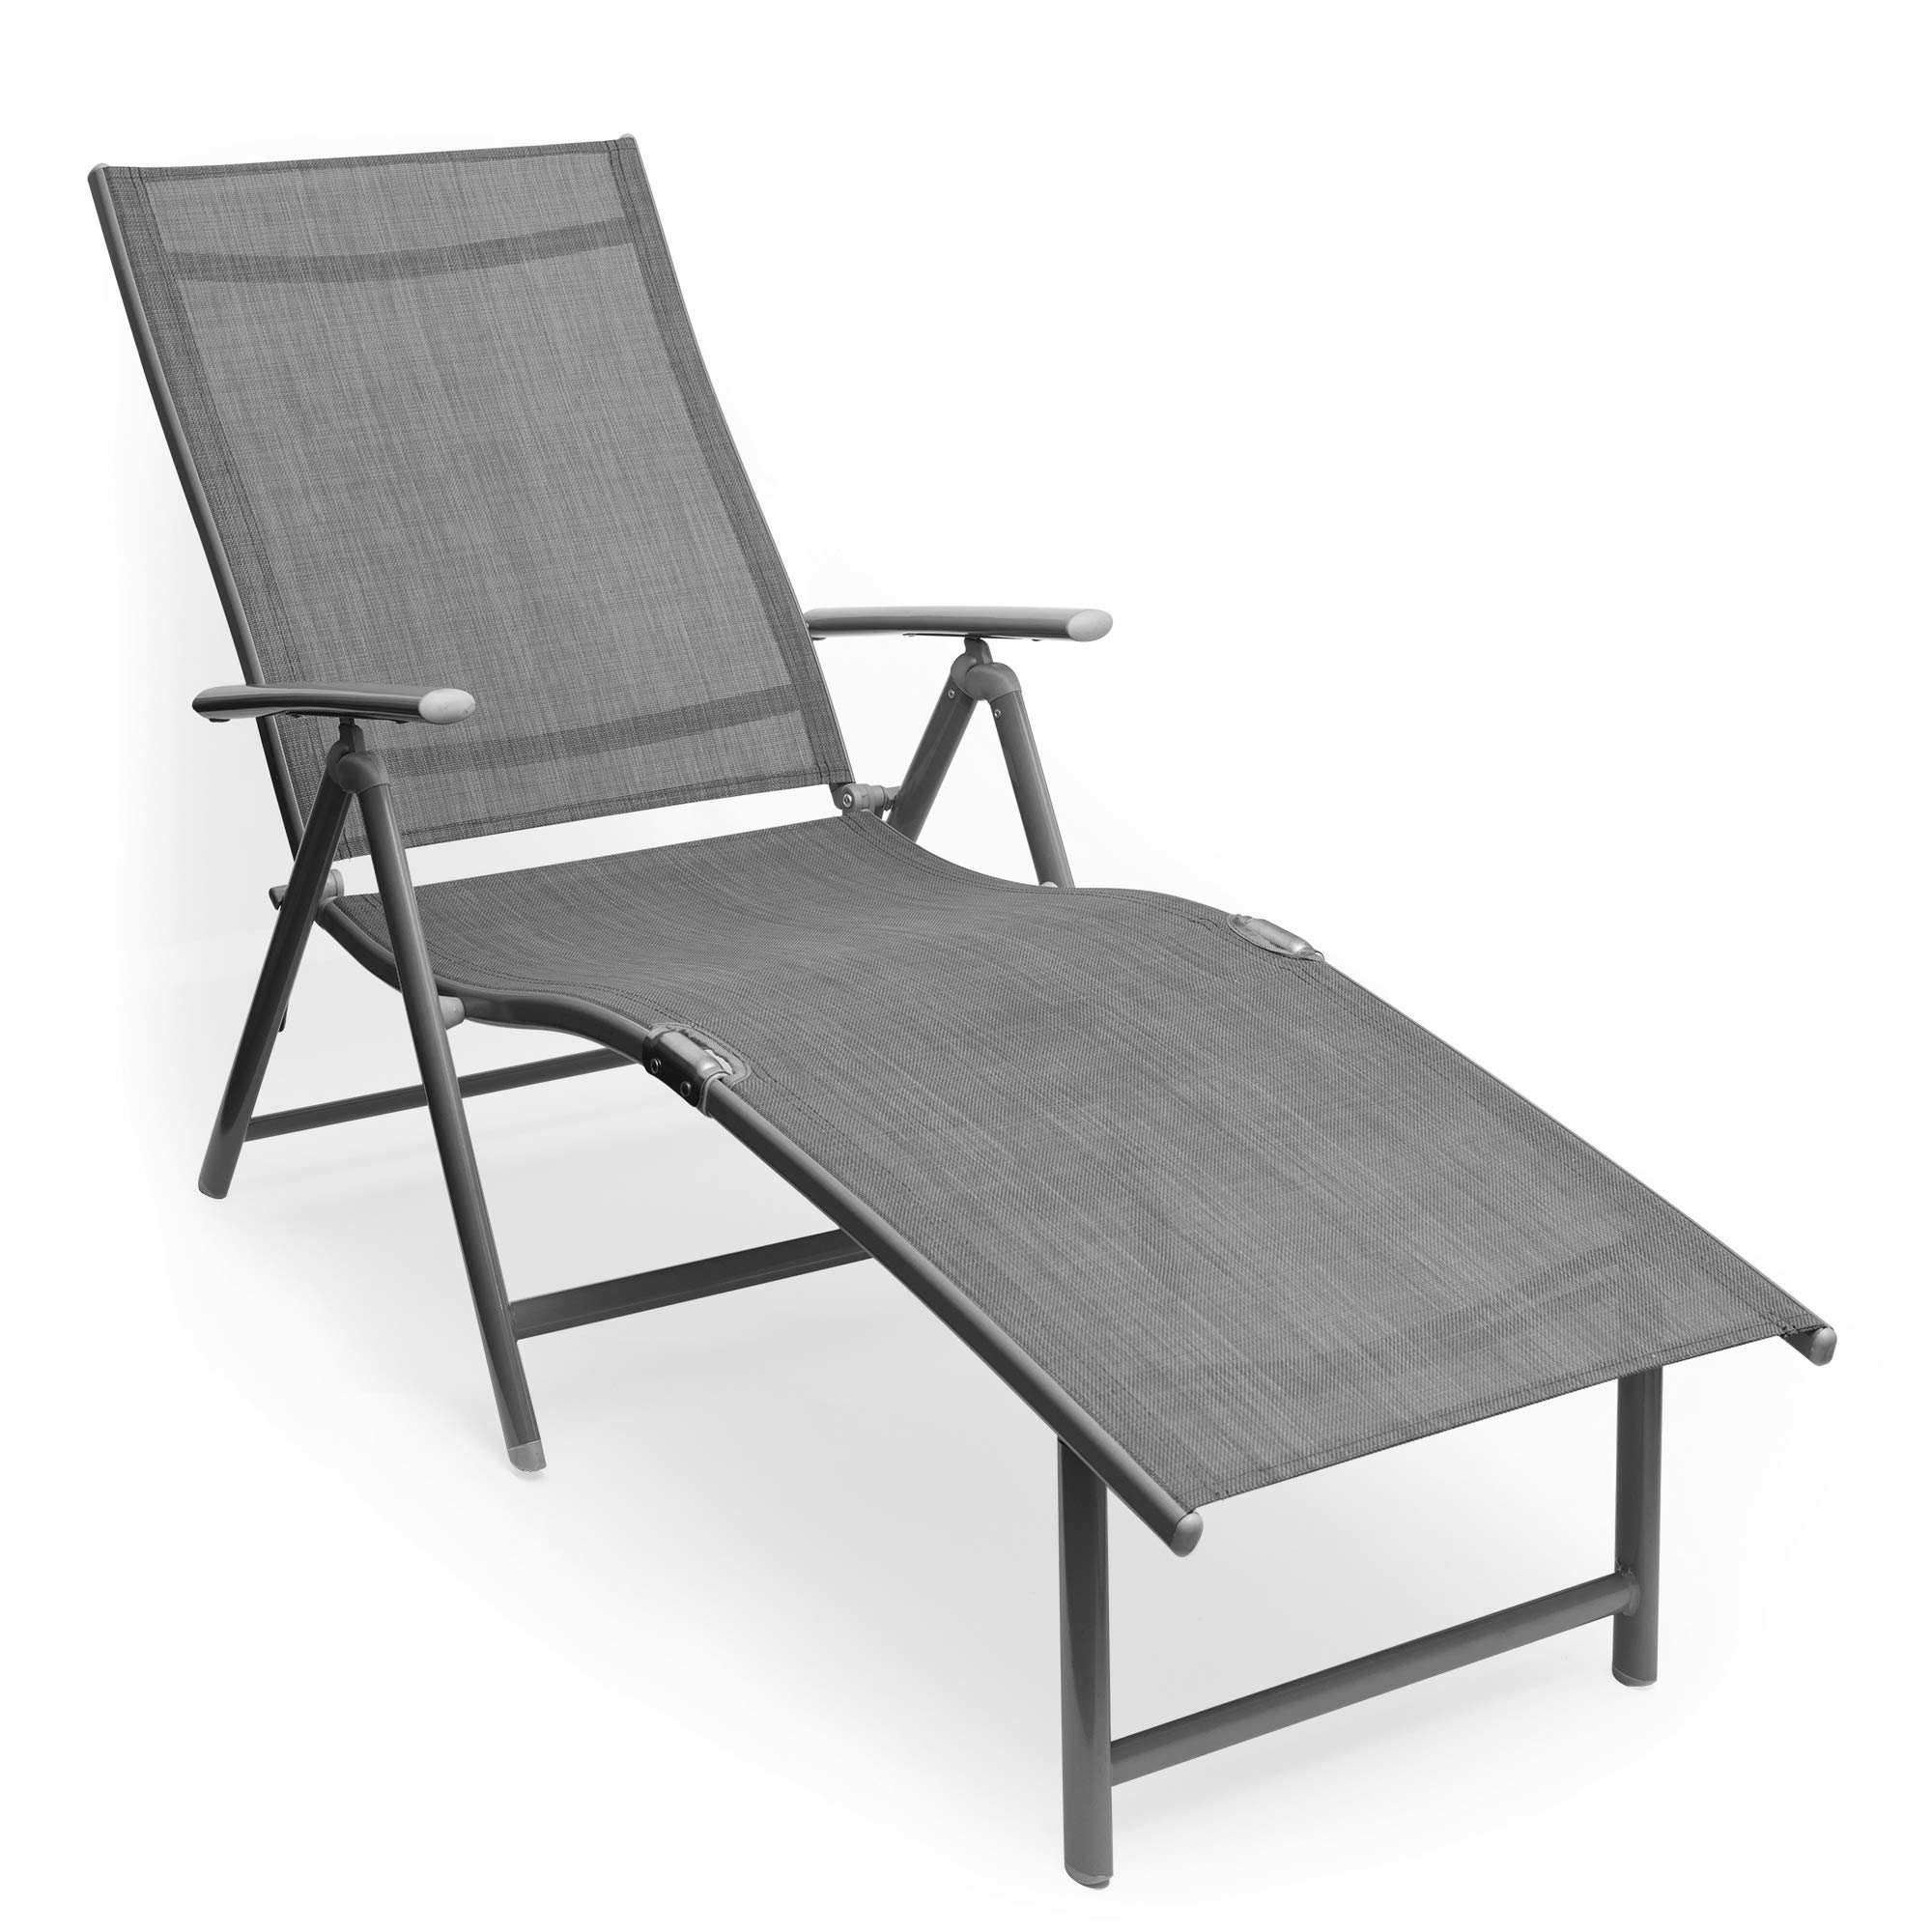 Kozyard Cozy Aluminum Beach Yard Pool Folding Reclining Adjustable Chaise Lounge Chair (1, Gray) by Kozyard